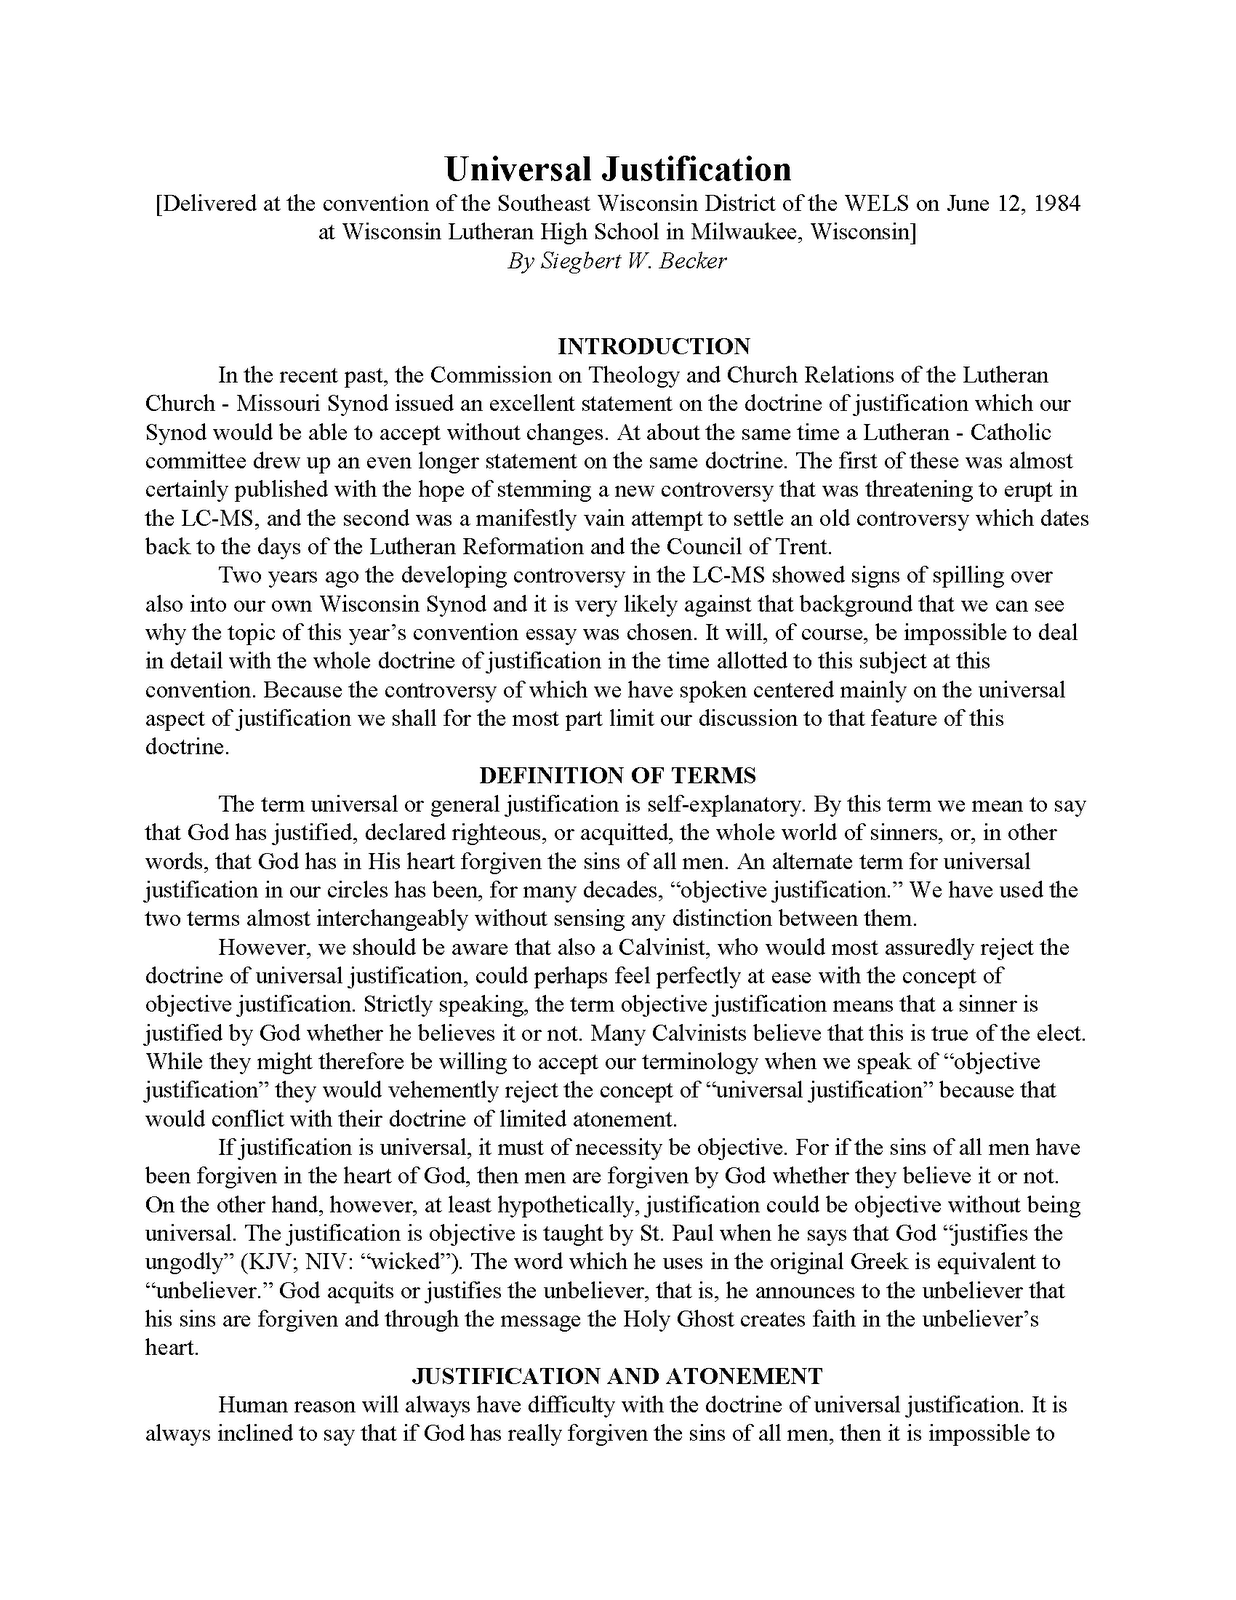 013 Essay Example Beckeruniversal Page 1 Incredible 1984 Topics Stasiland George Orwell Research Paper Book Questions Full